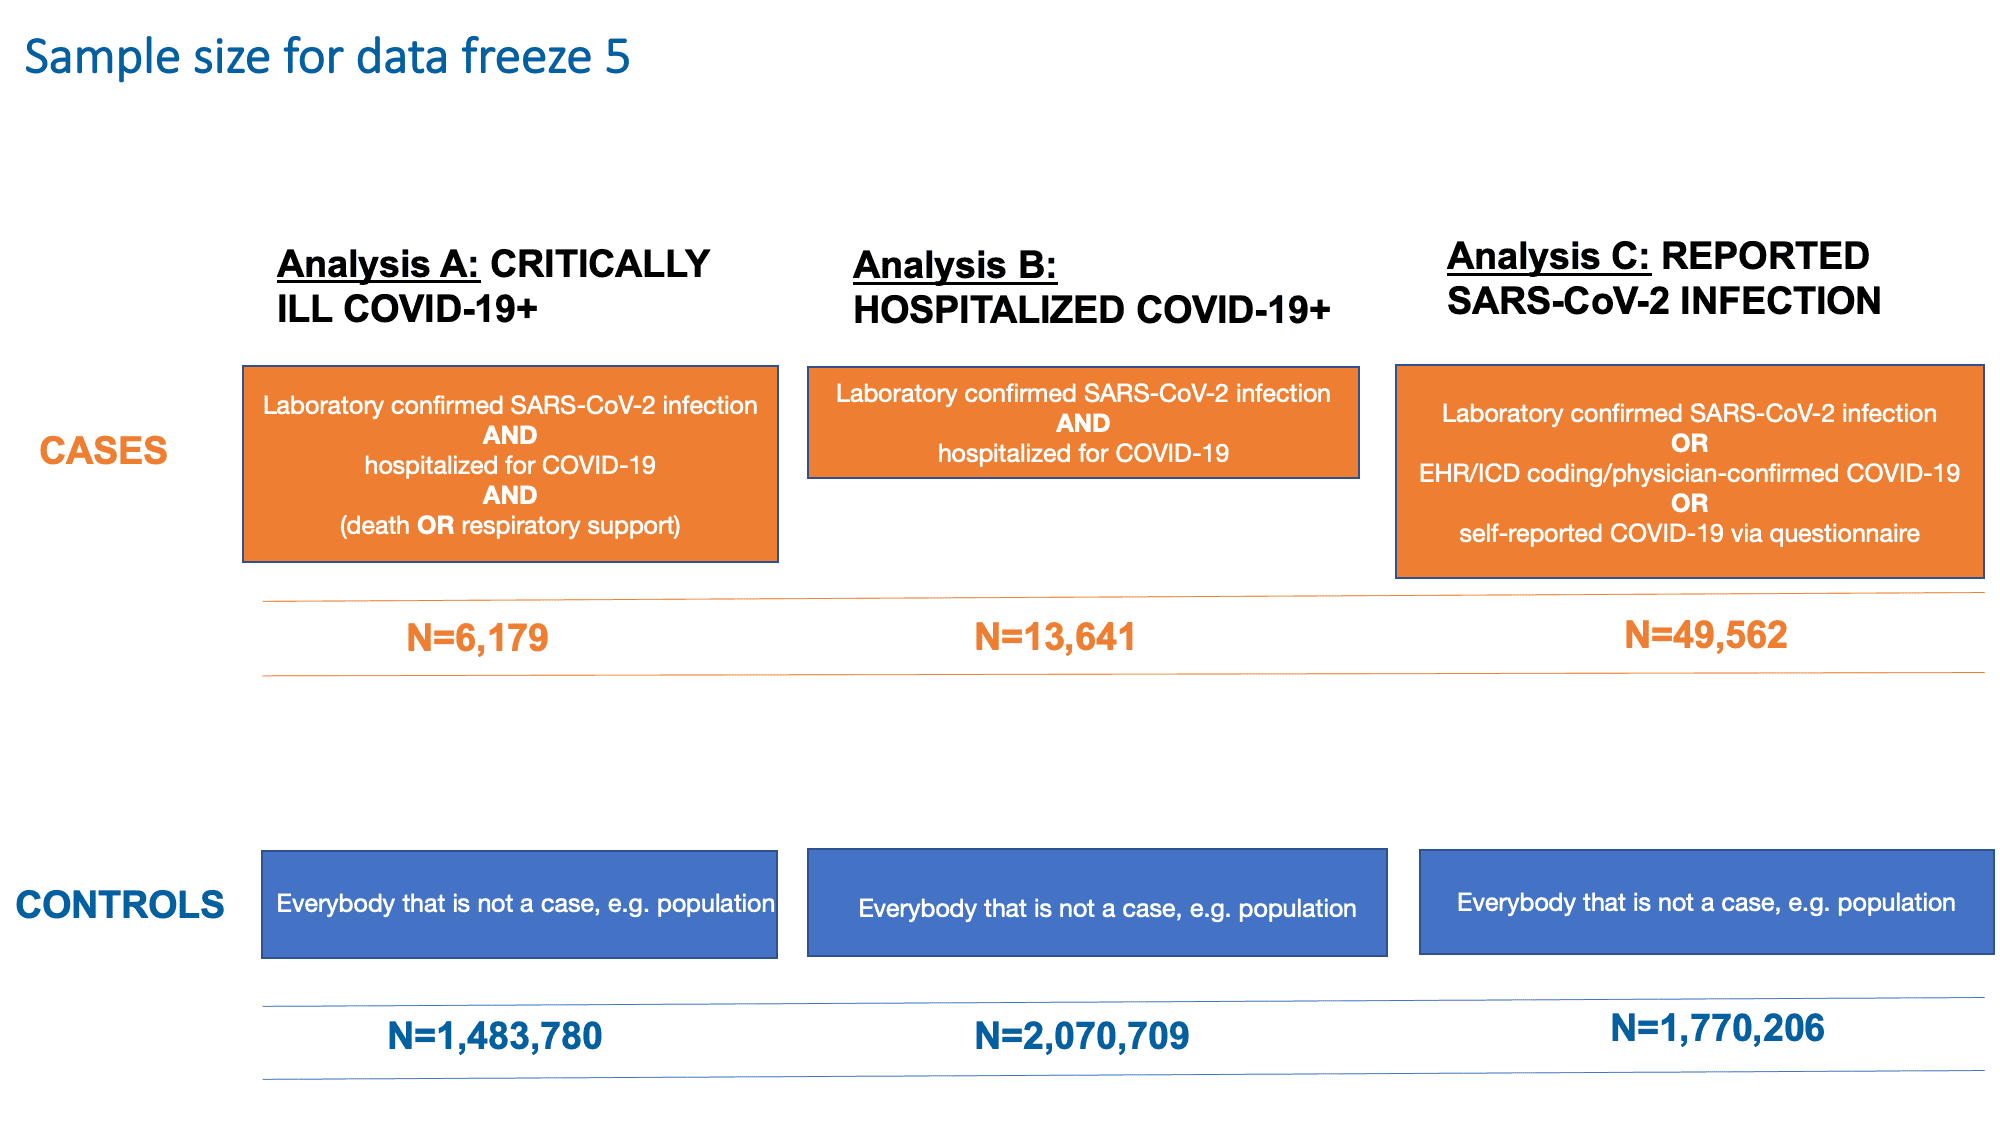 Figure 2: Definition of cases and controls for each of the analysis in data freeze 5.